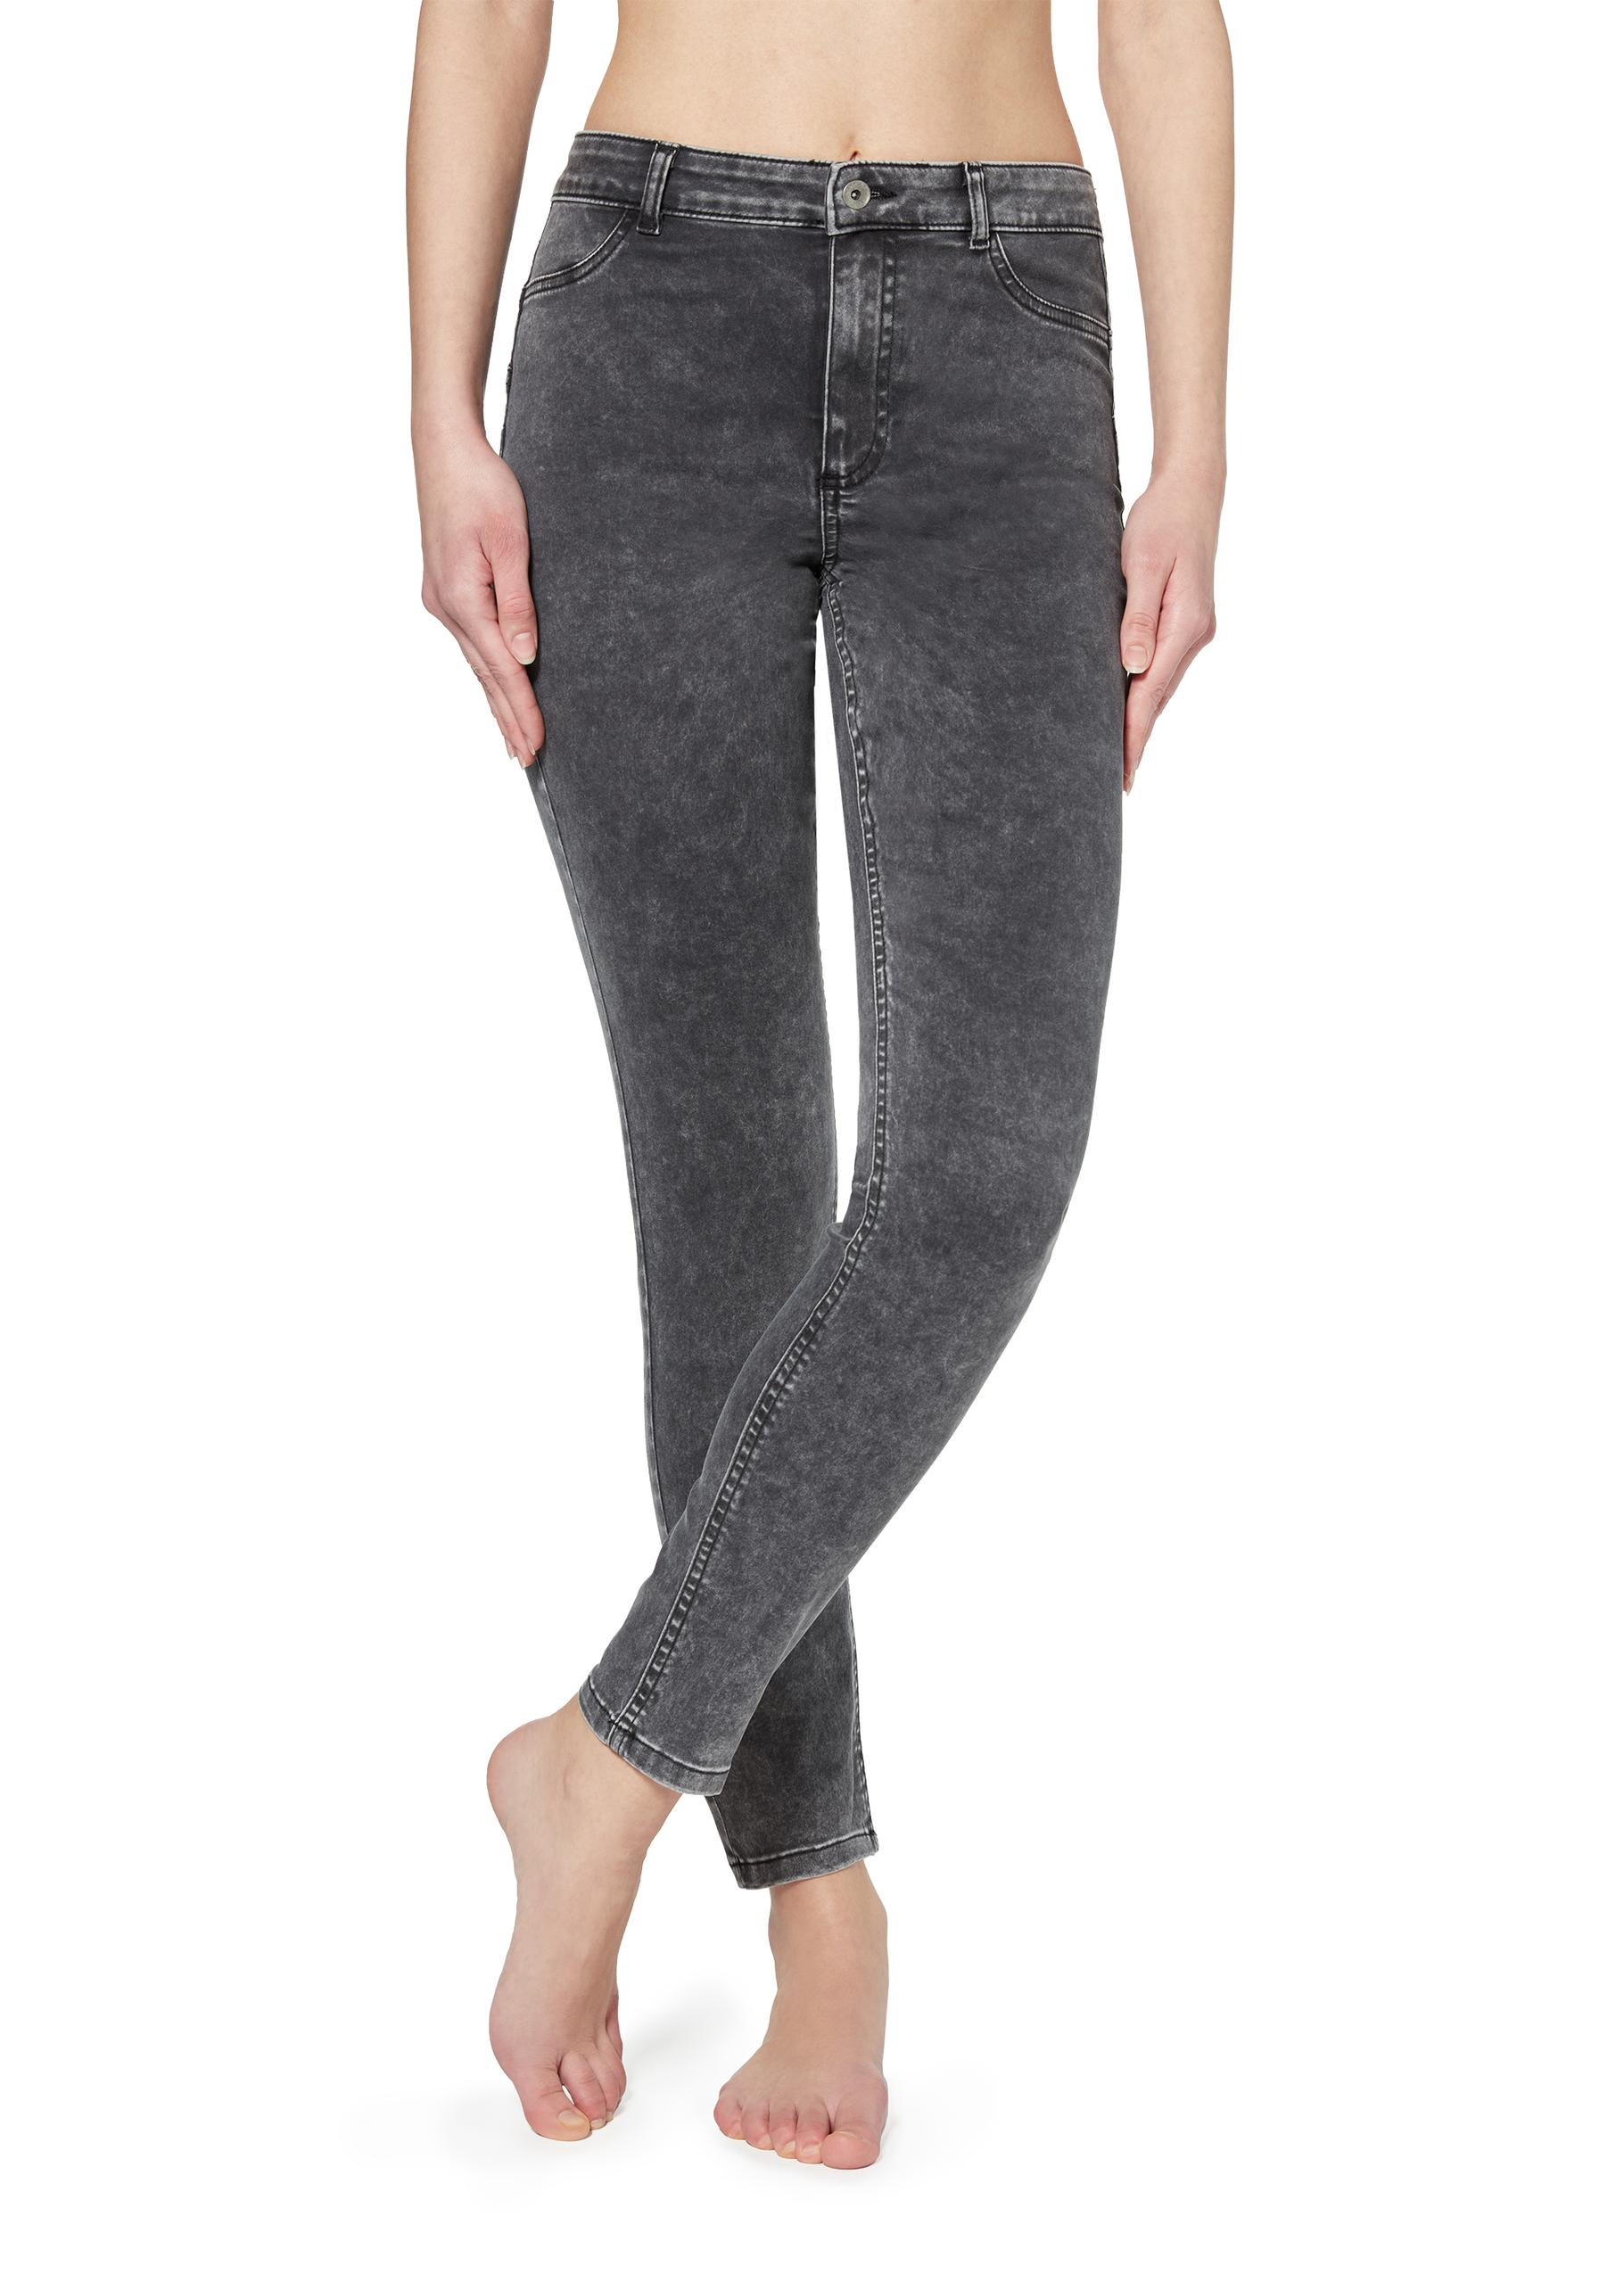 calzedonia - Weiche Push-Up-Jeans